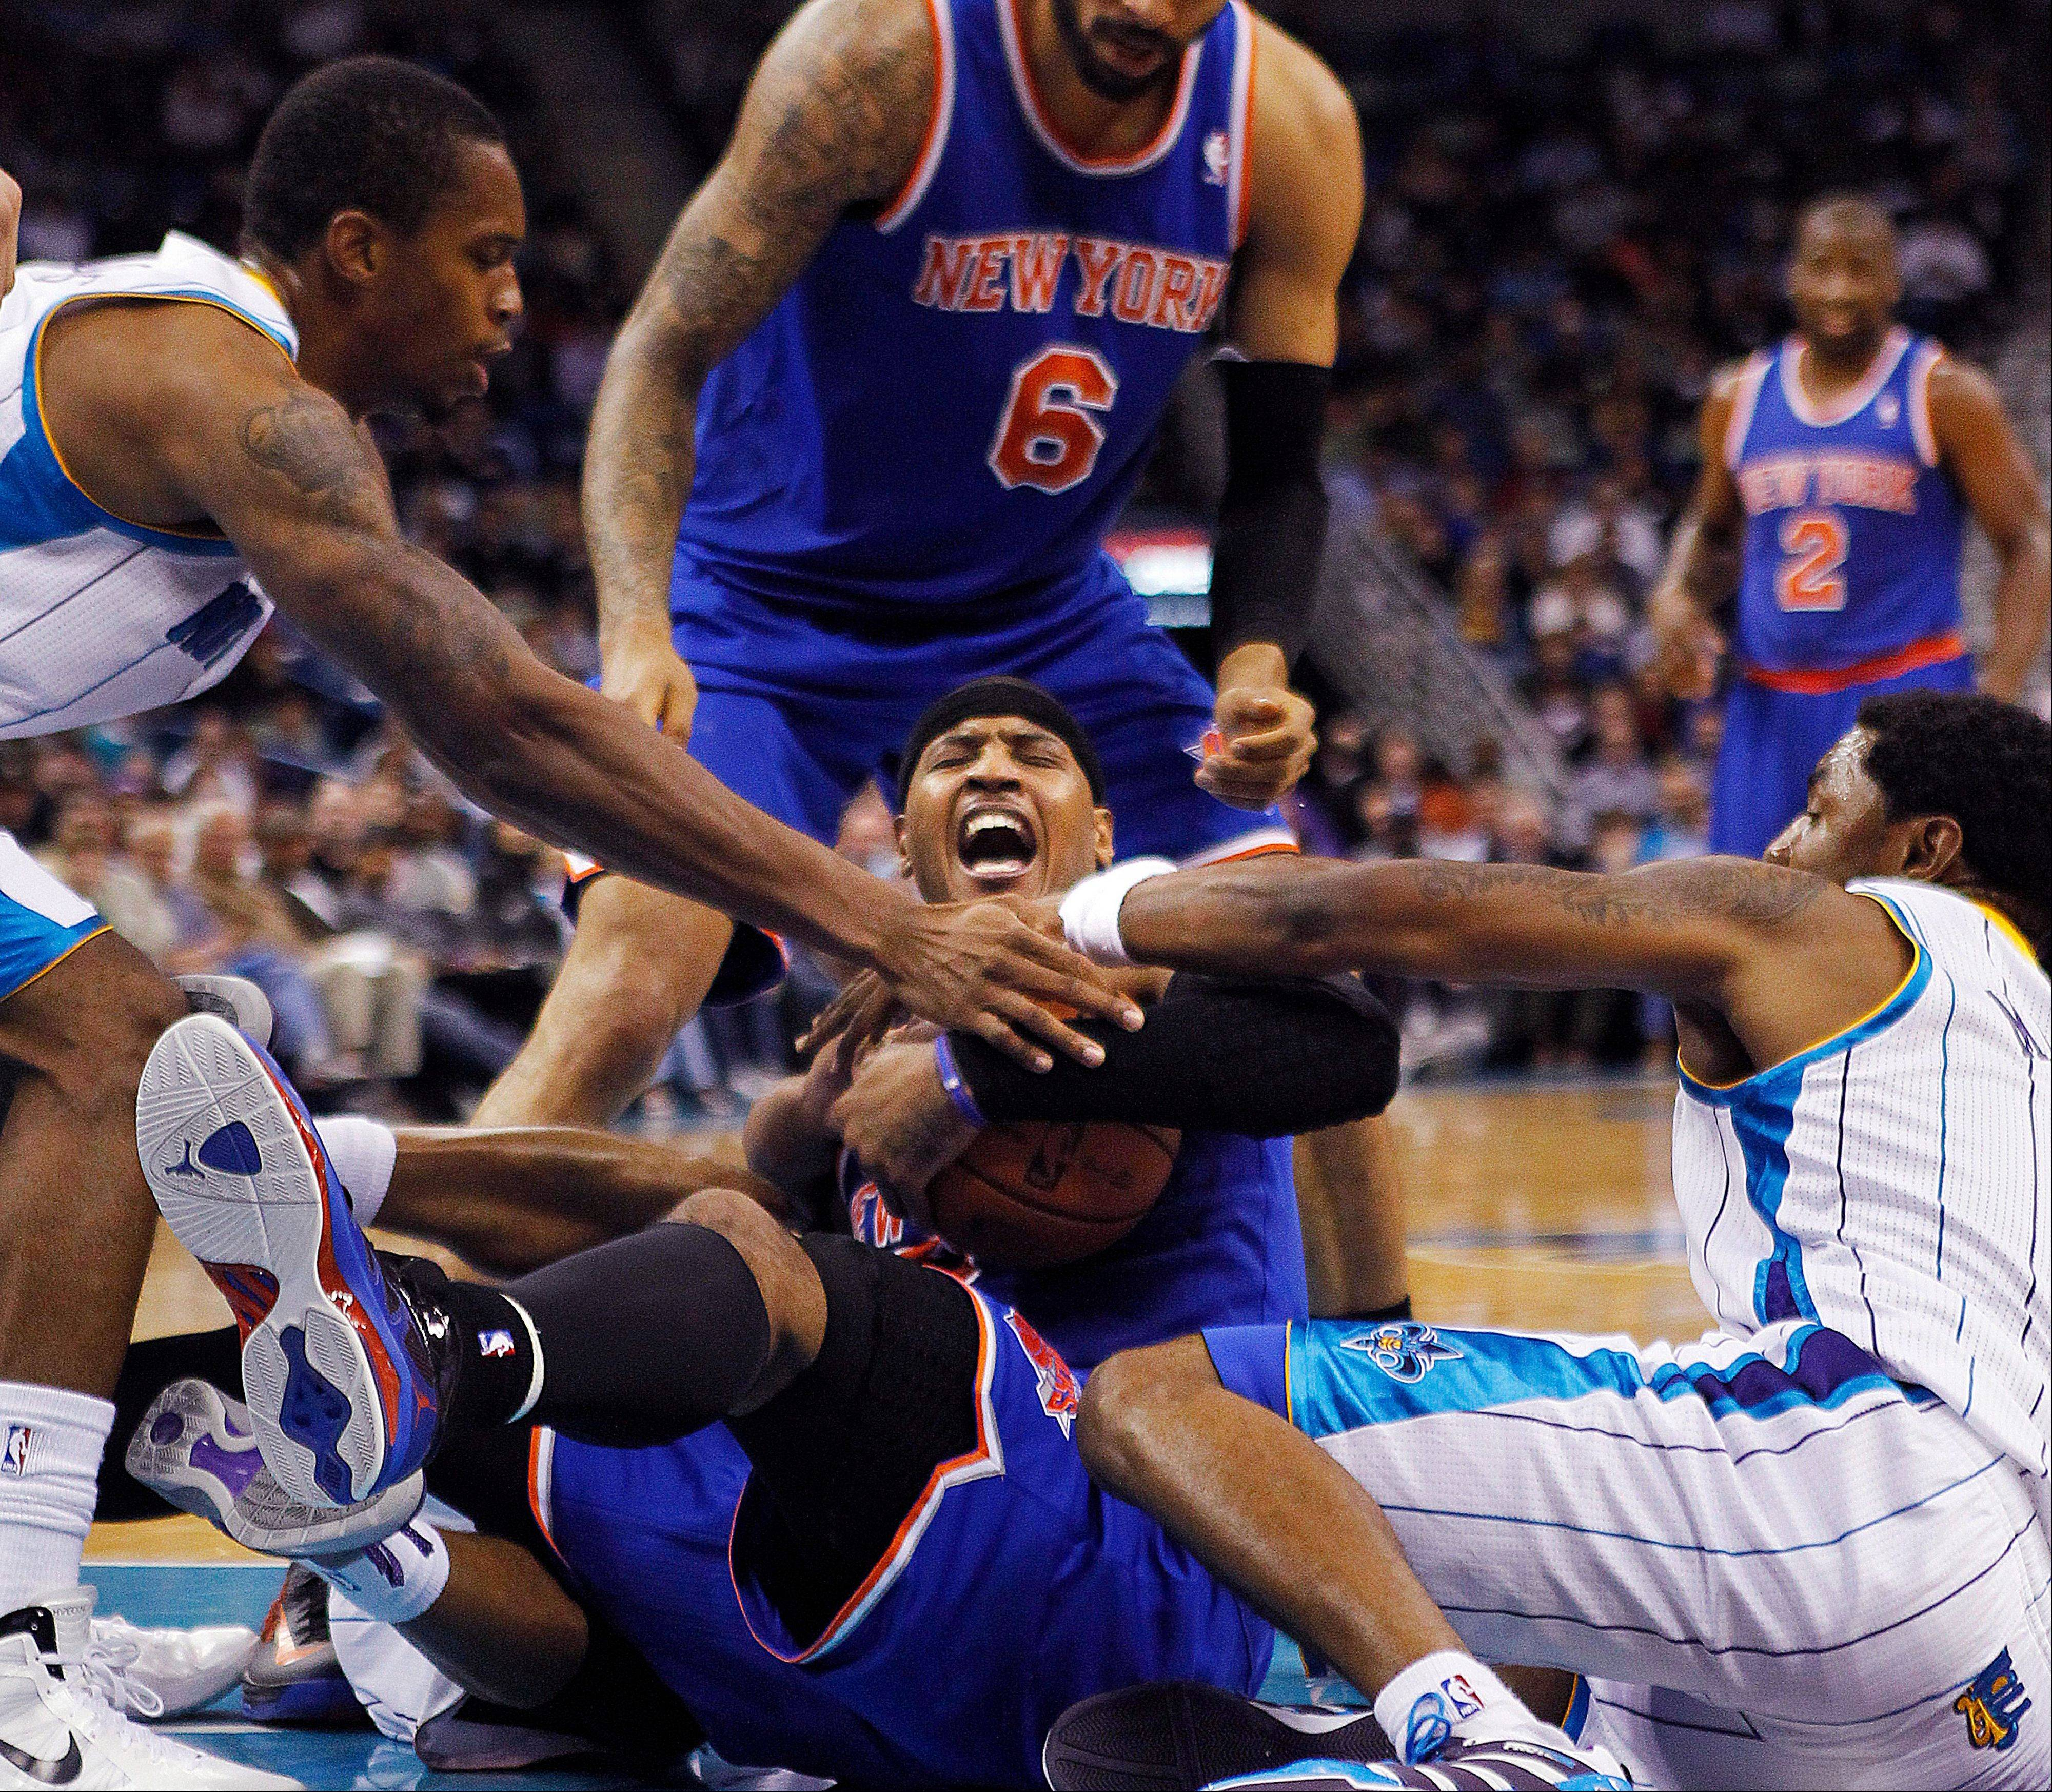 New York Knicks forward Carmelo Anthony, center, wrestles for a loose ball with New Orleans Hornets forward Lance Thomas, left, and guard Roger Mason Jr., right, Tuesday during the first half.